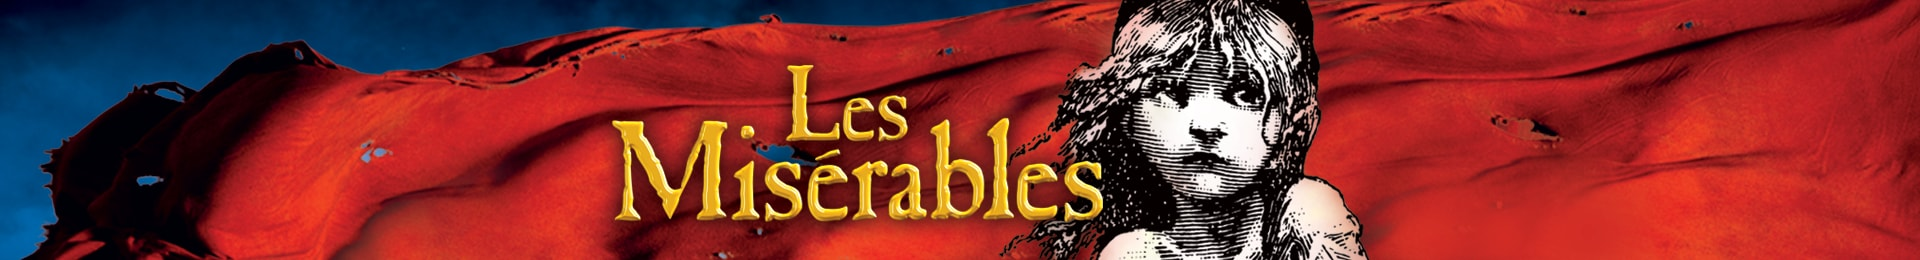 Les Miserables Tickets at the Queens Theatre